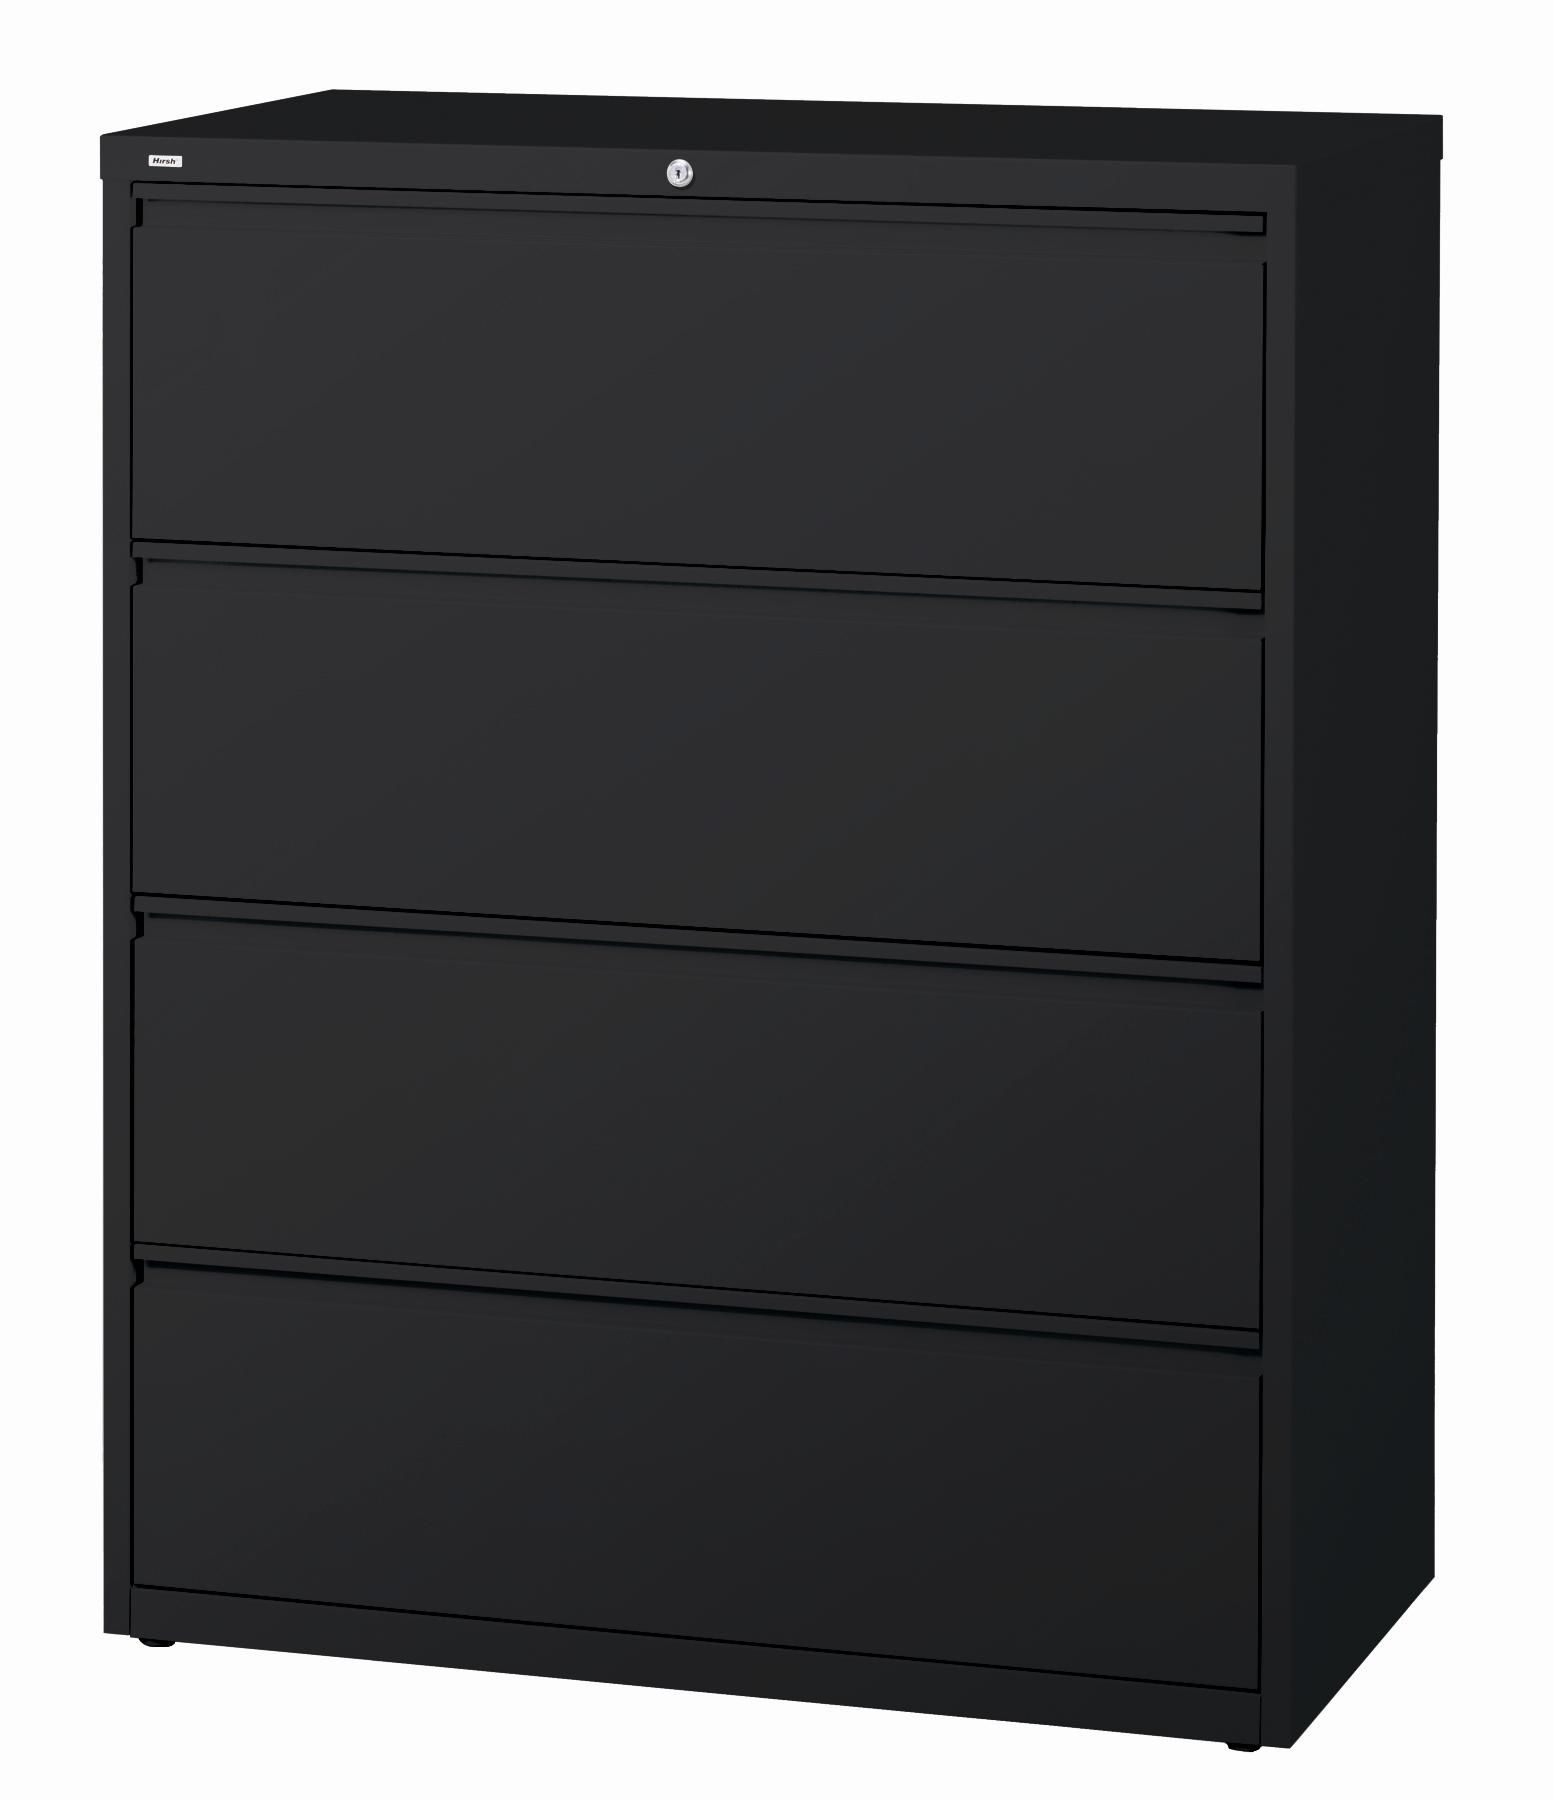 4 Drawer Lateral File Cabinet 42 Wide